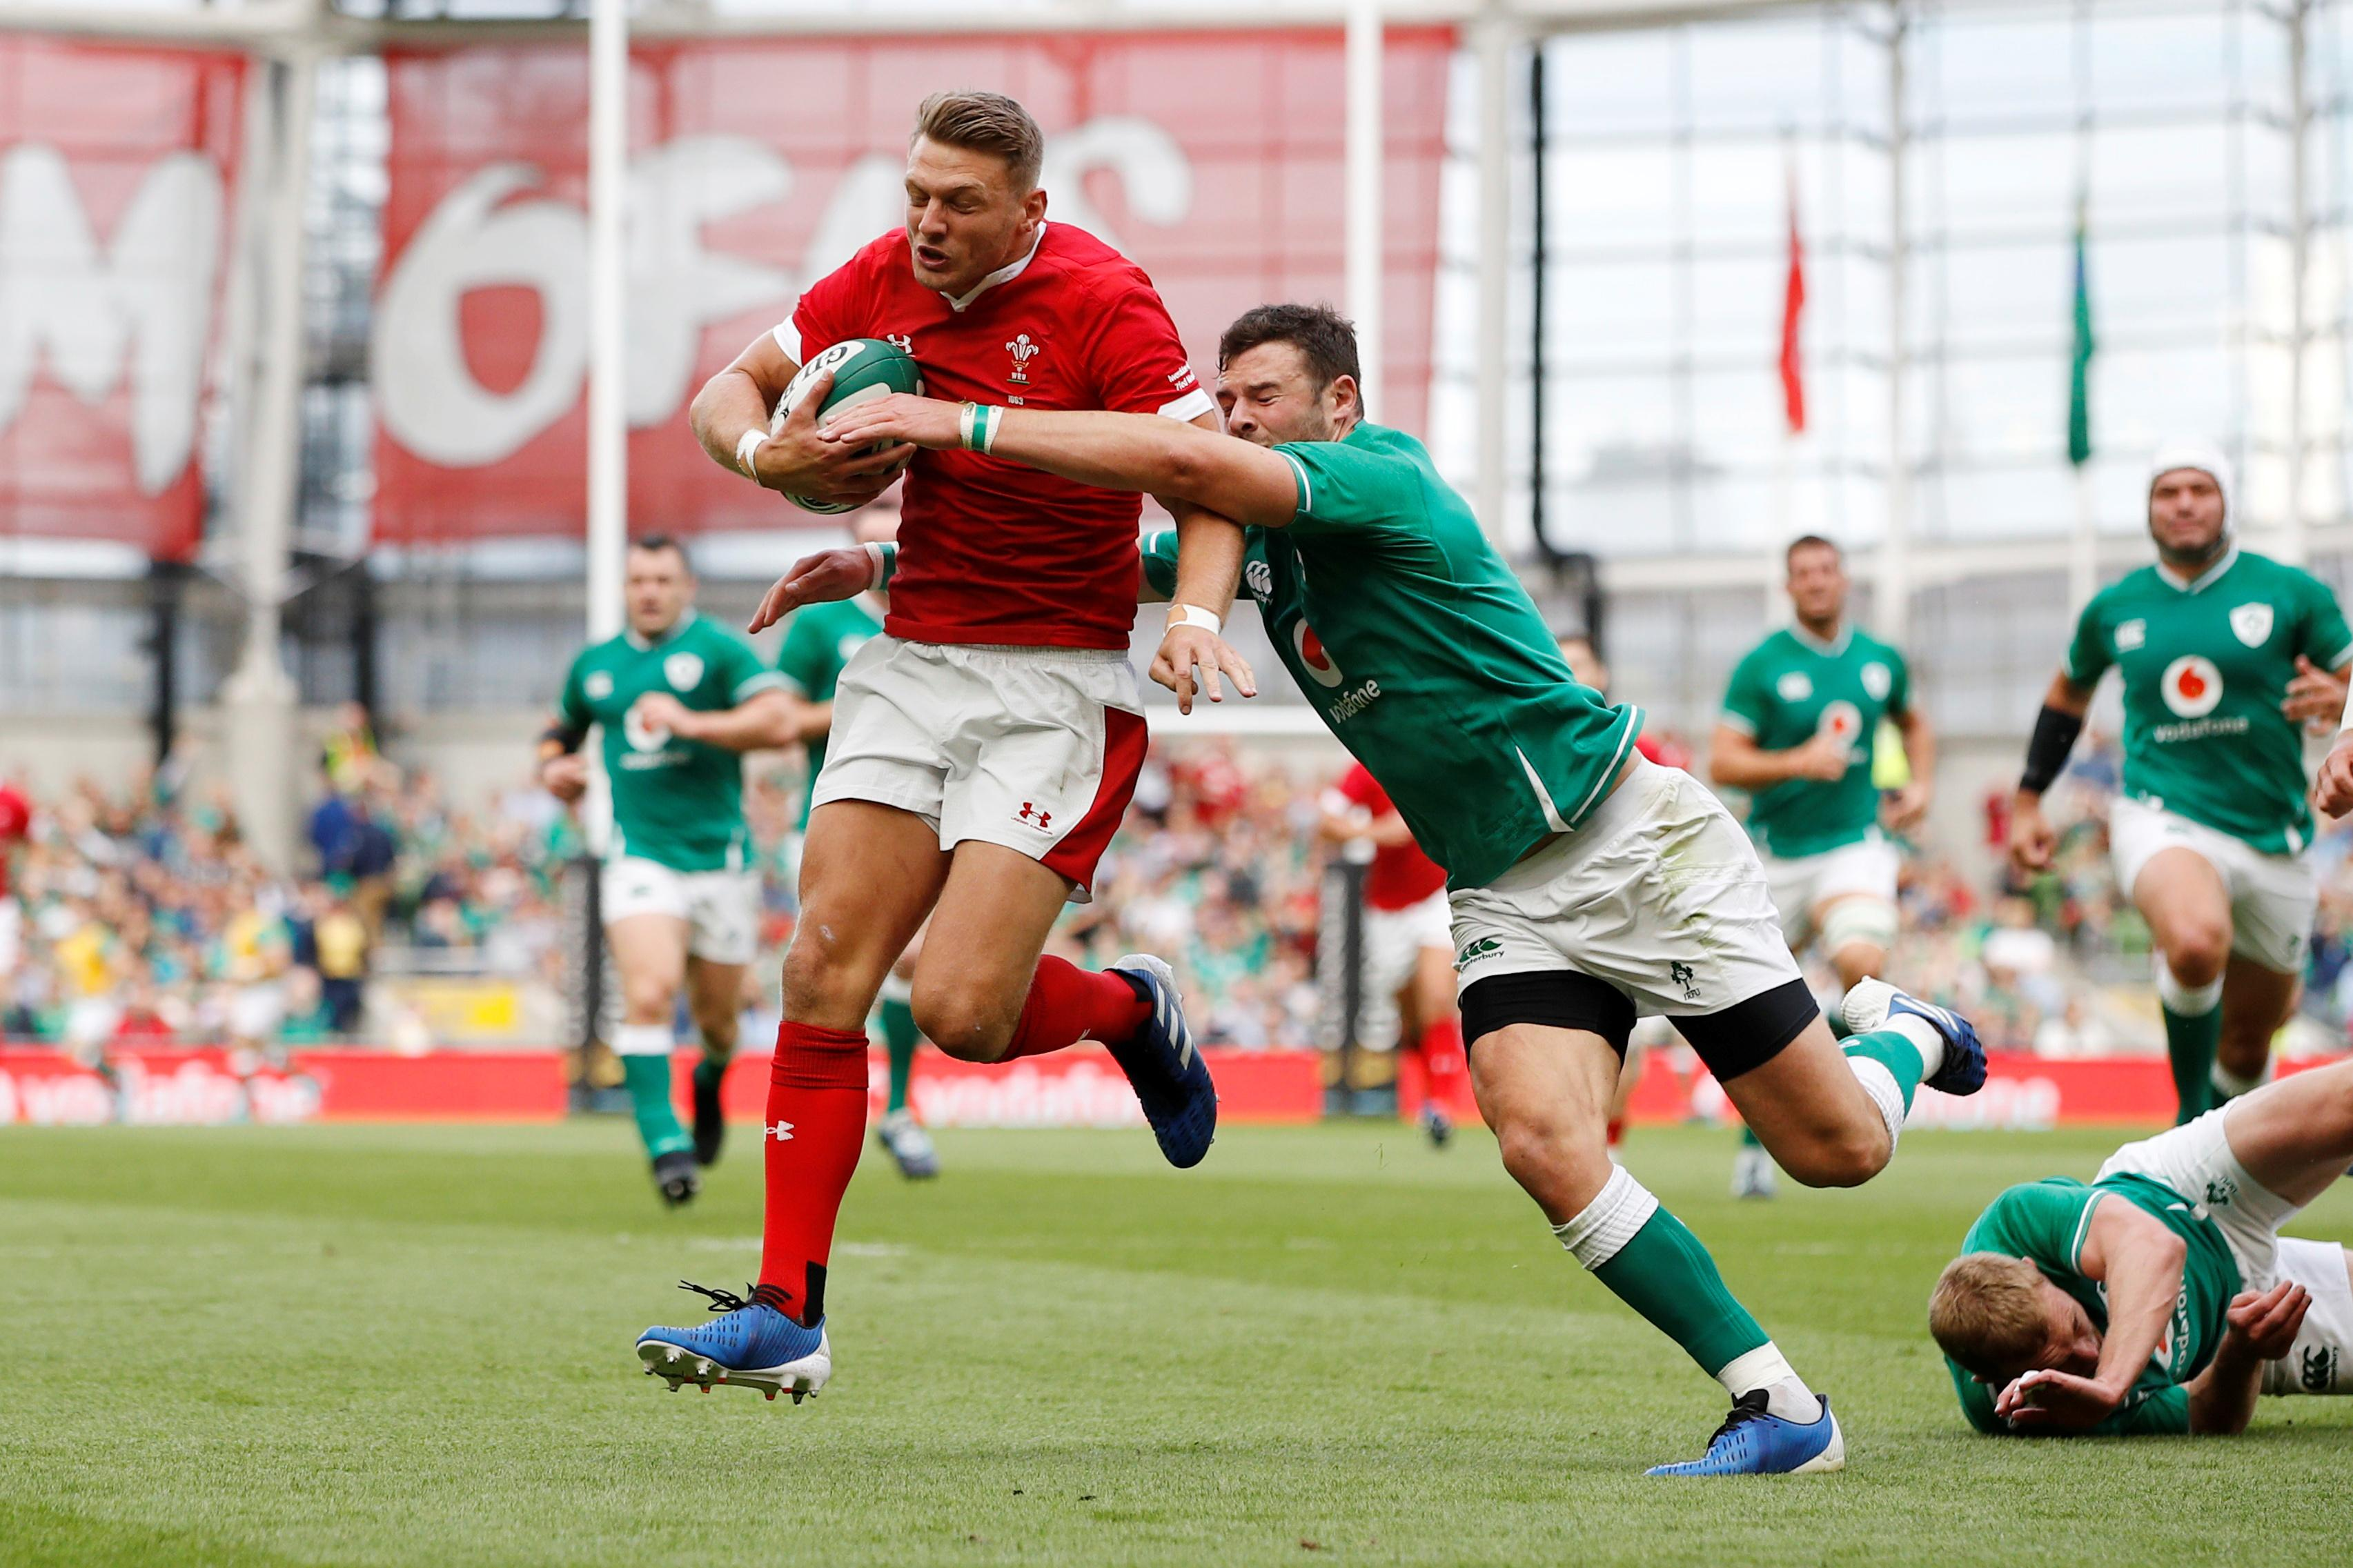 Rugby: Henshaw to stay in Ireland World Cup squad despite injury